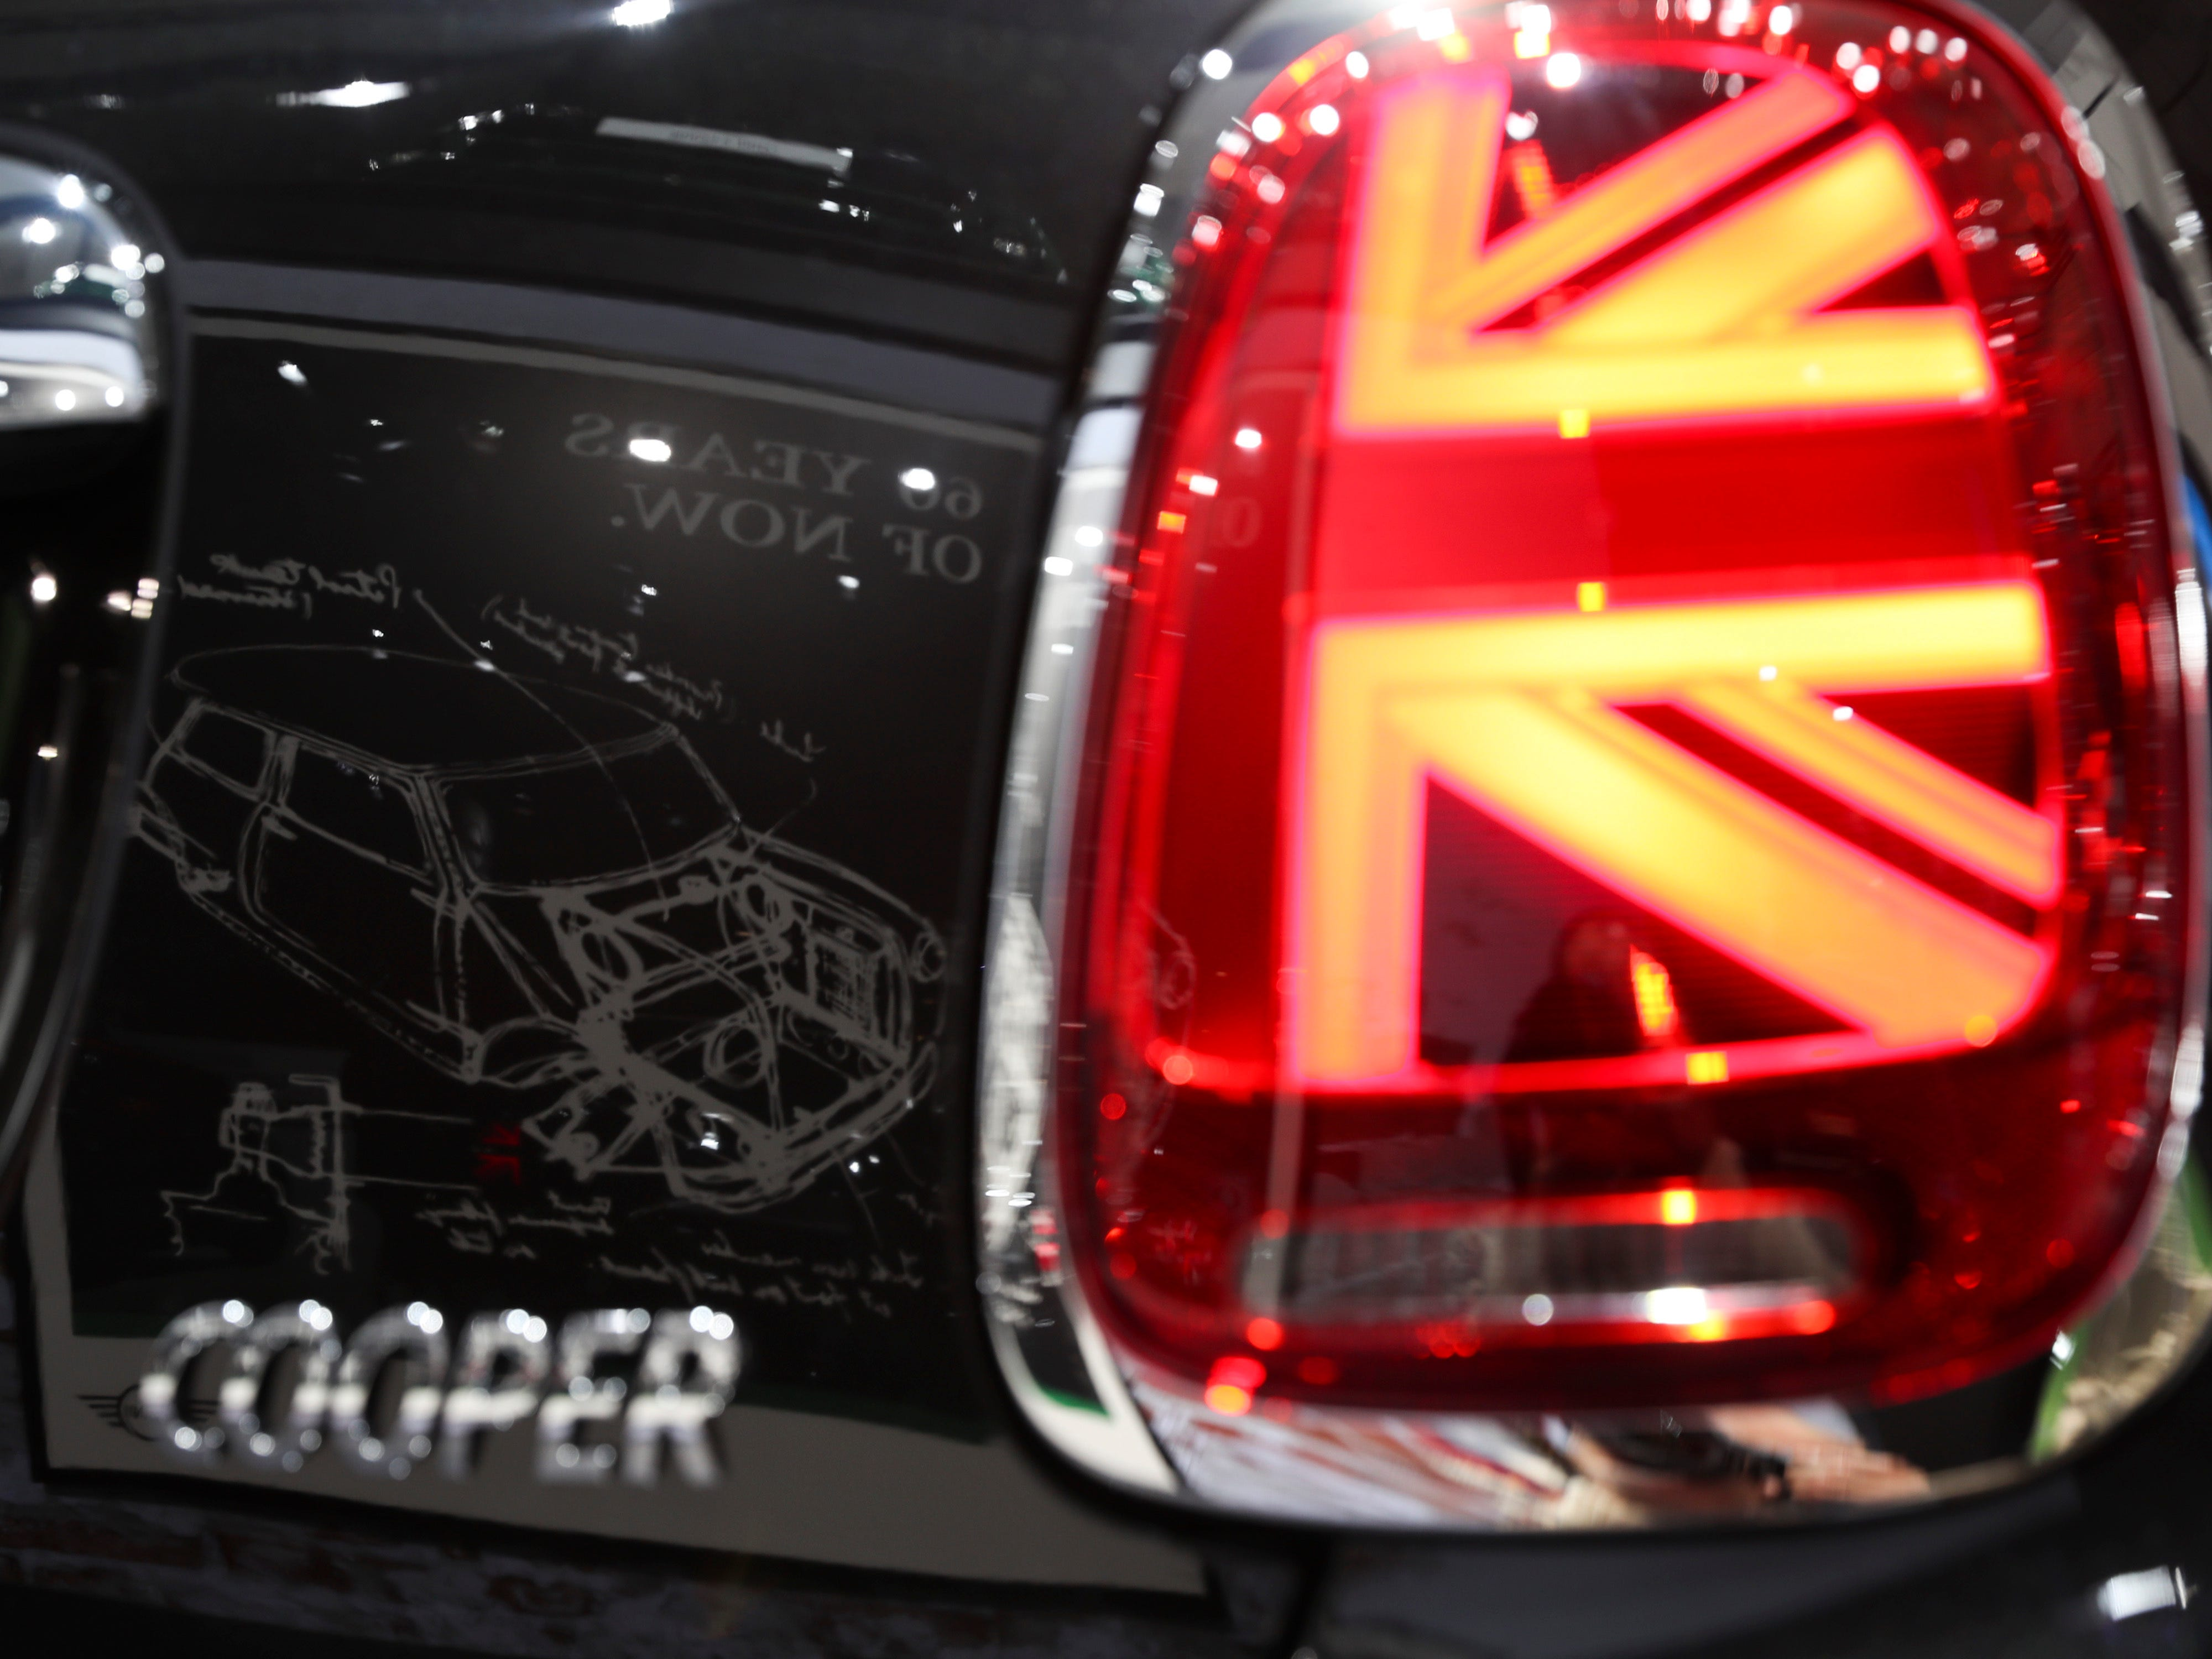 A Mini car sketch is reflected on the new Mini Cooper.